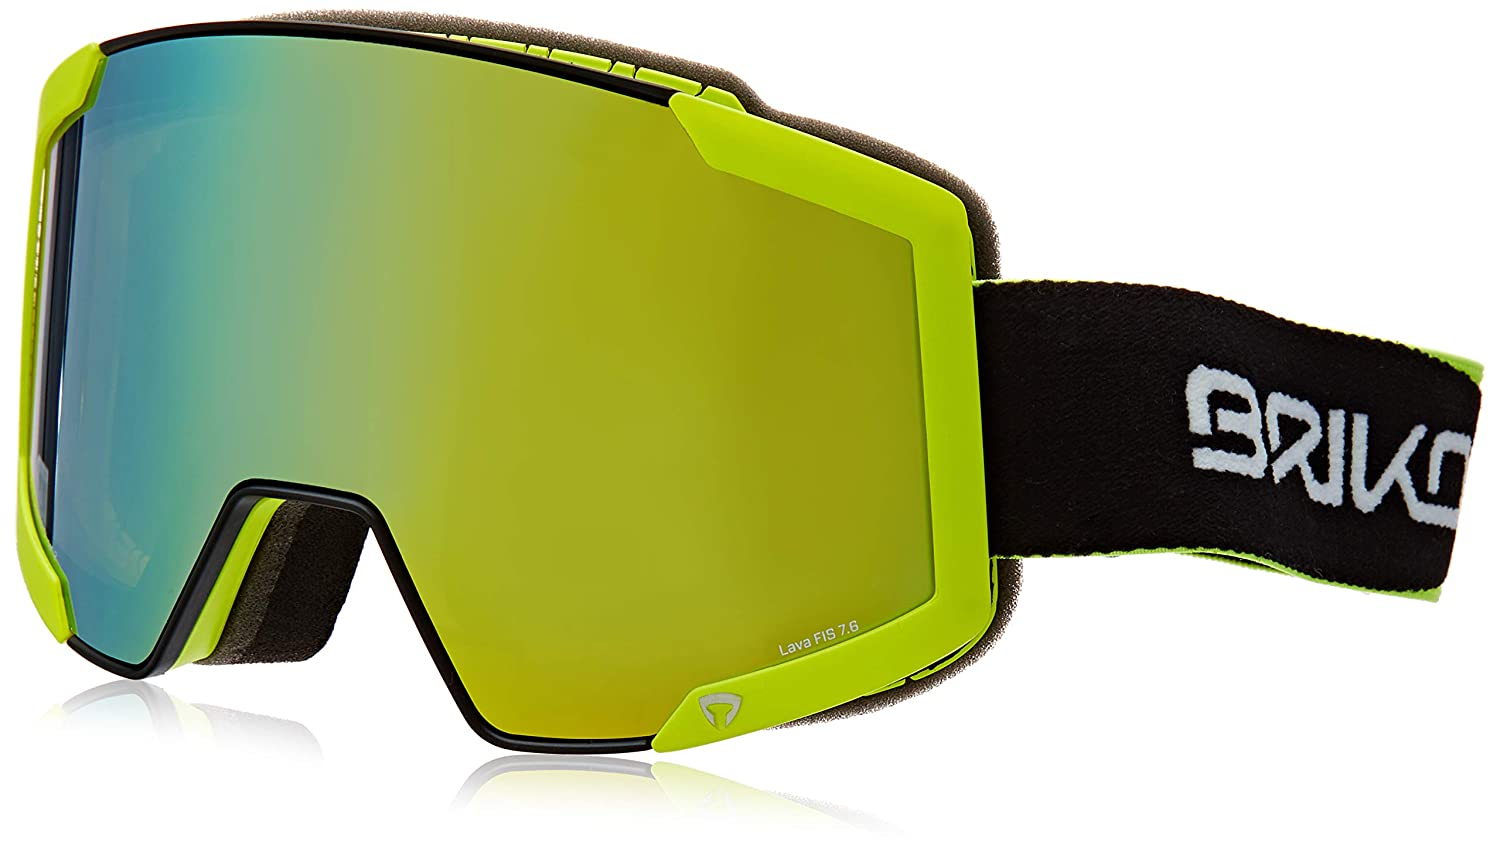 a68322a0a Briko Lava Fis 7.6 2 Lenses, Unisex Adult Glasses, unisex adult, 2001MN0,  C74M Bl/Yellow Fl/Ym2P1, One Size: Amazon.co.uk: Sports & Outdoors